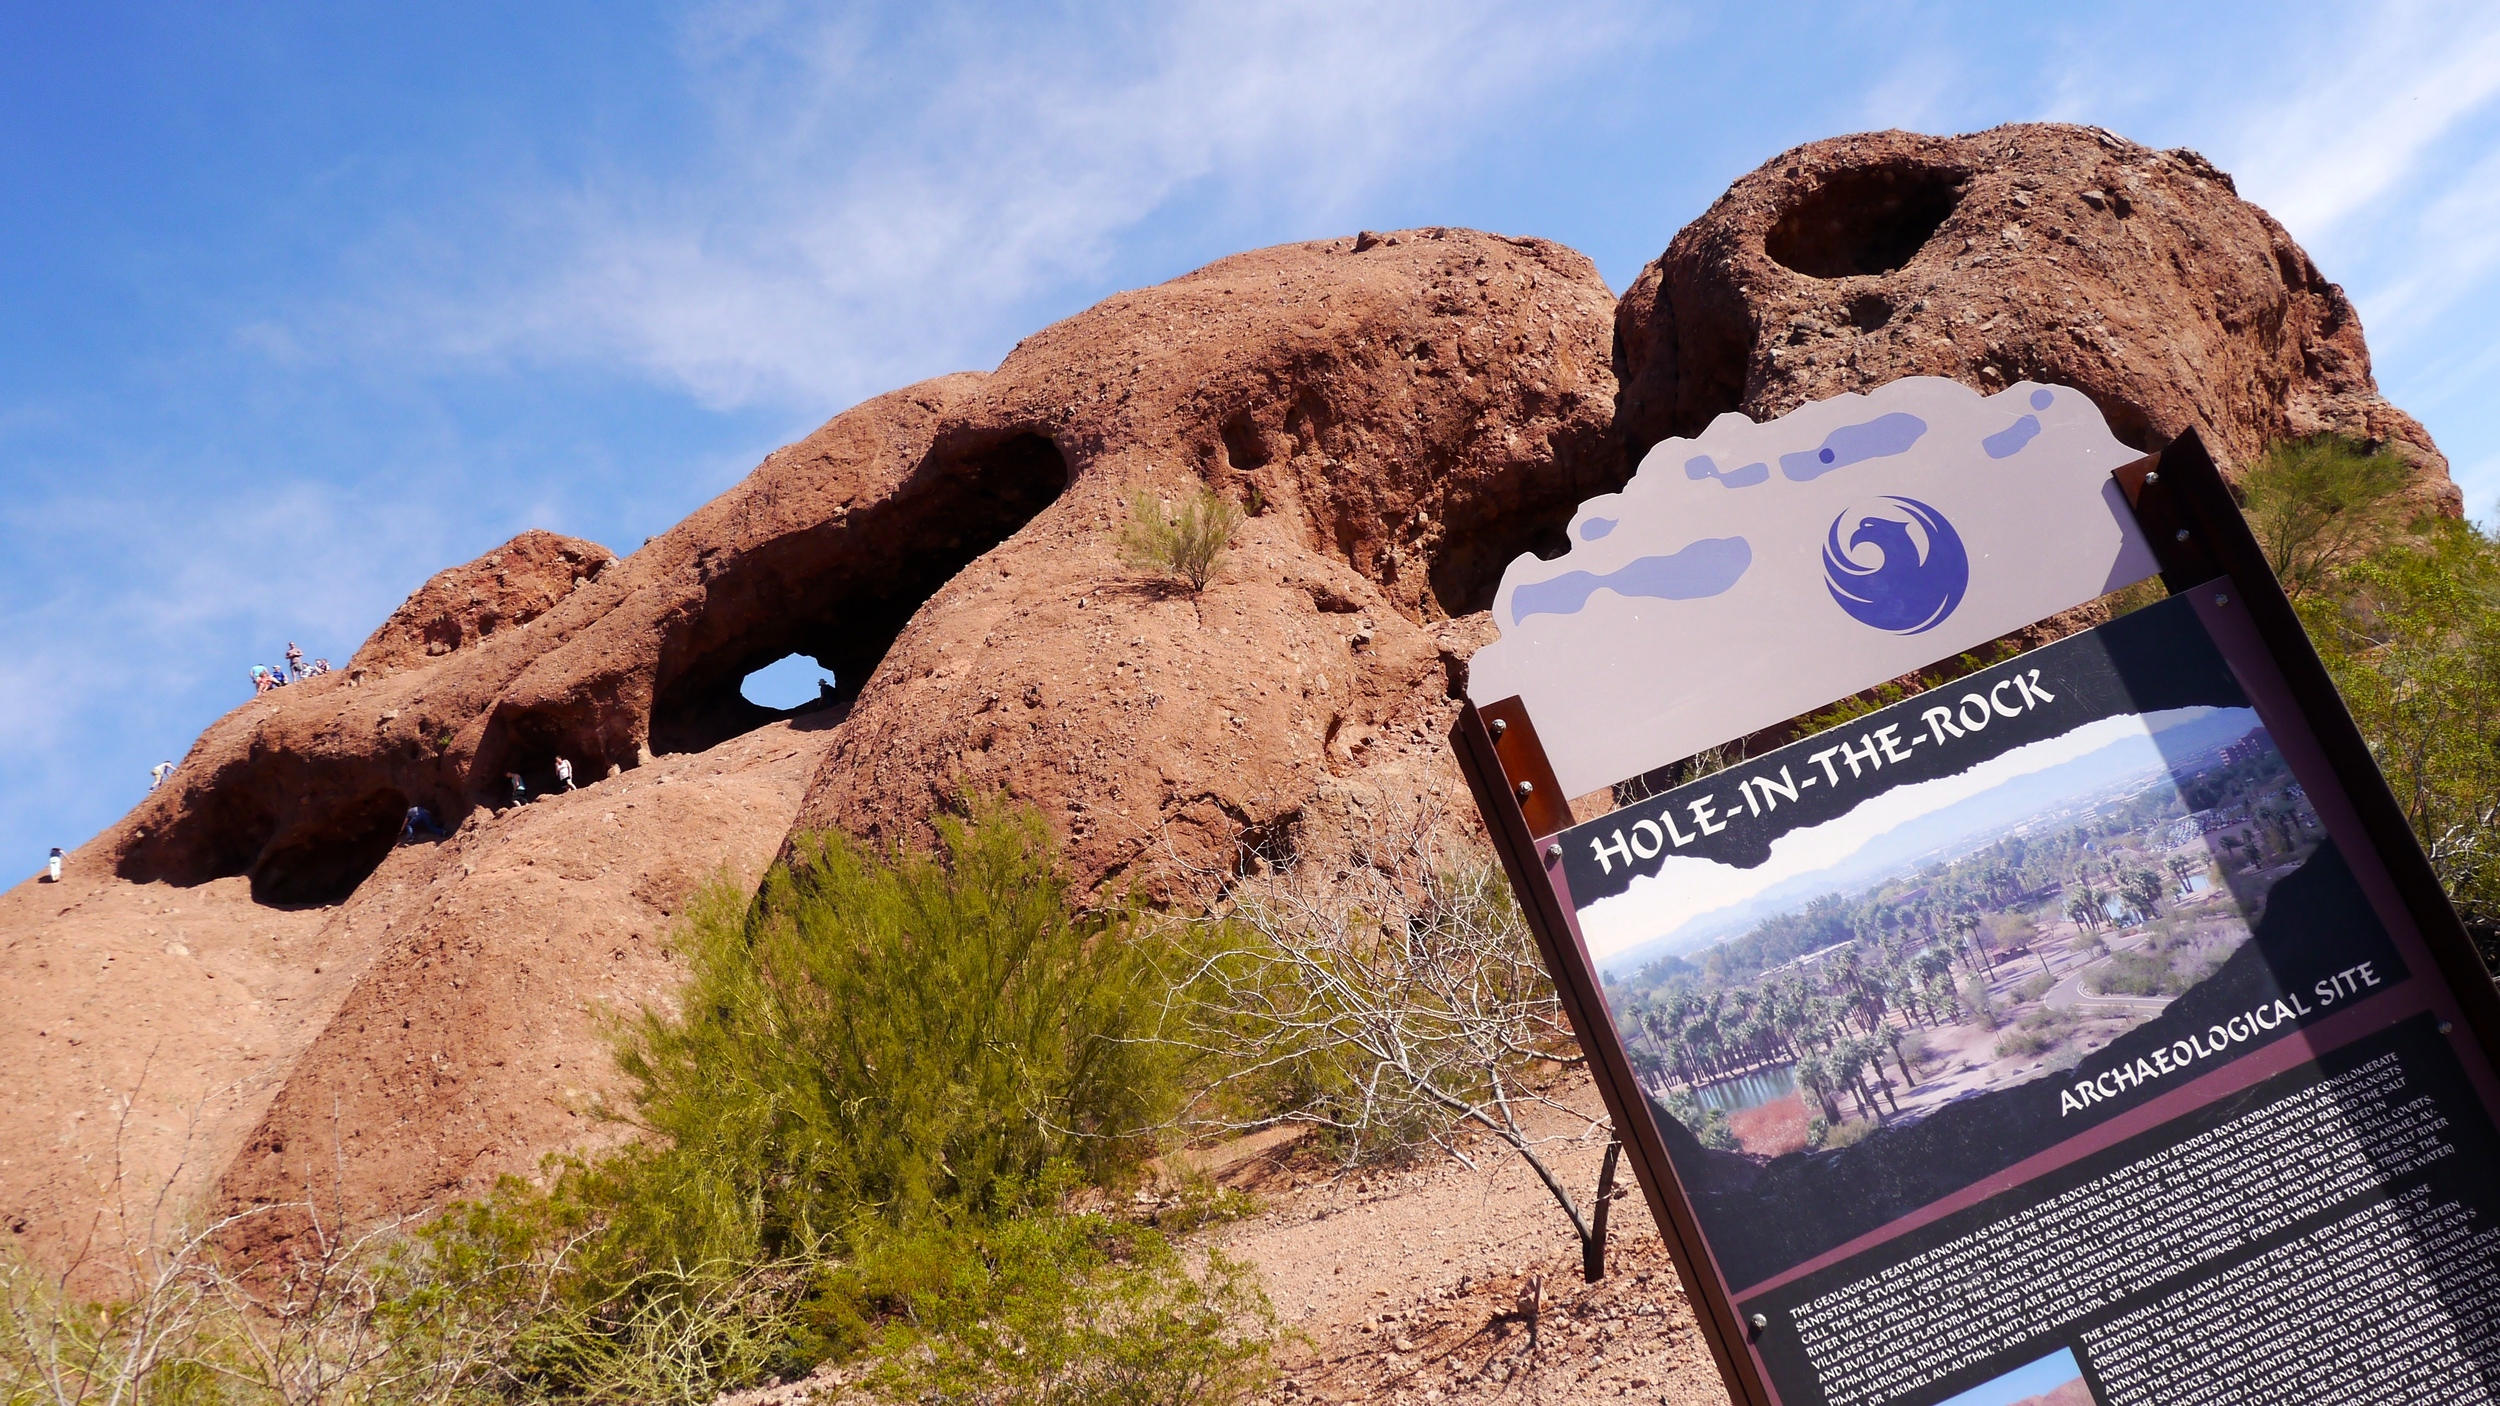 4/Hole in the Rock at Papago Park